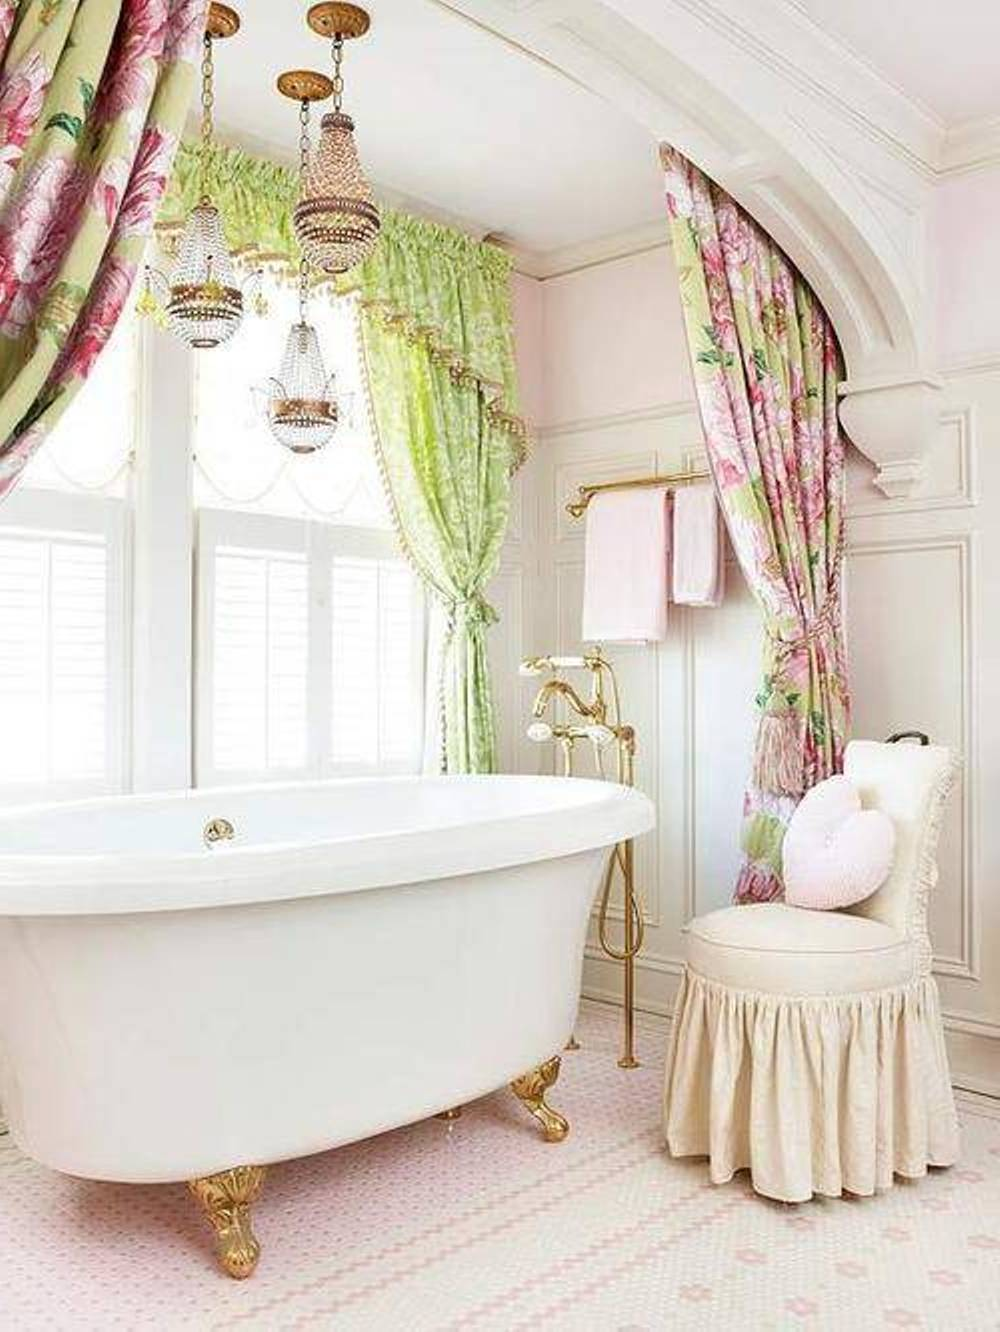 30 shabby chic bathroom design ideas to get inspired for Shabby chic cottage decor